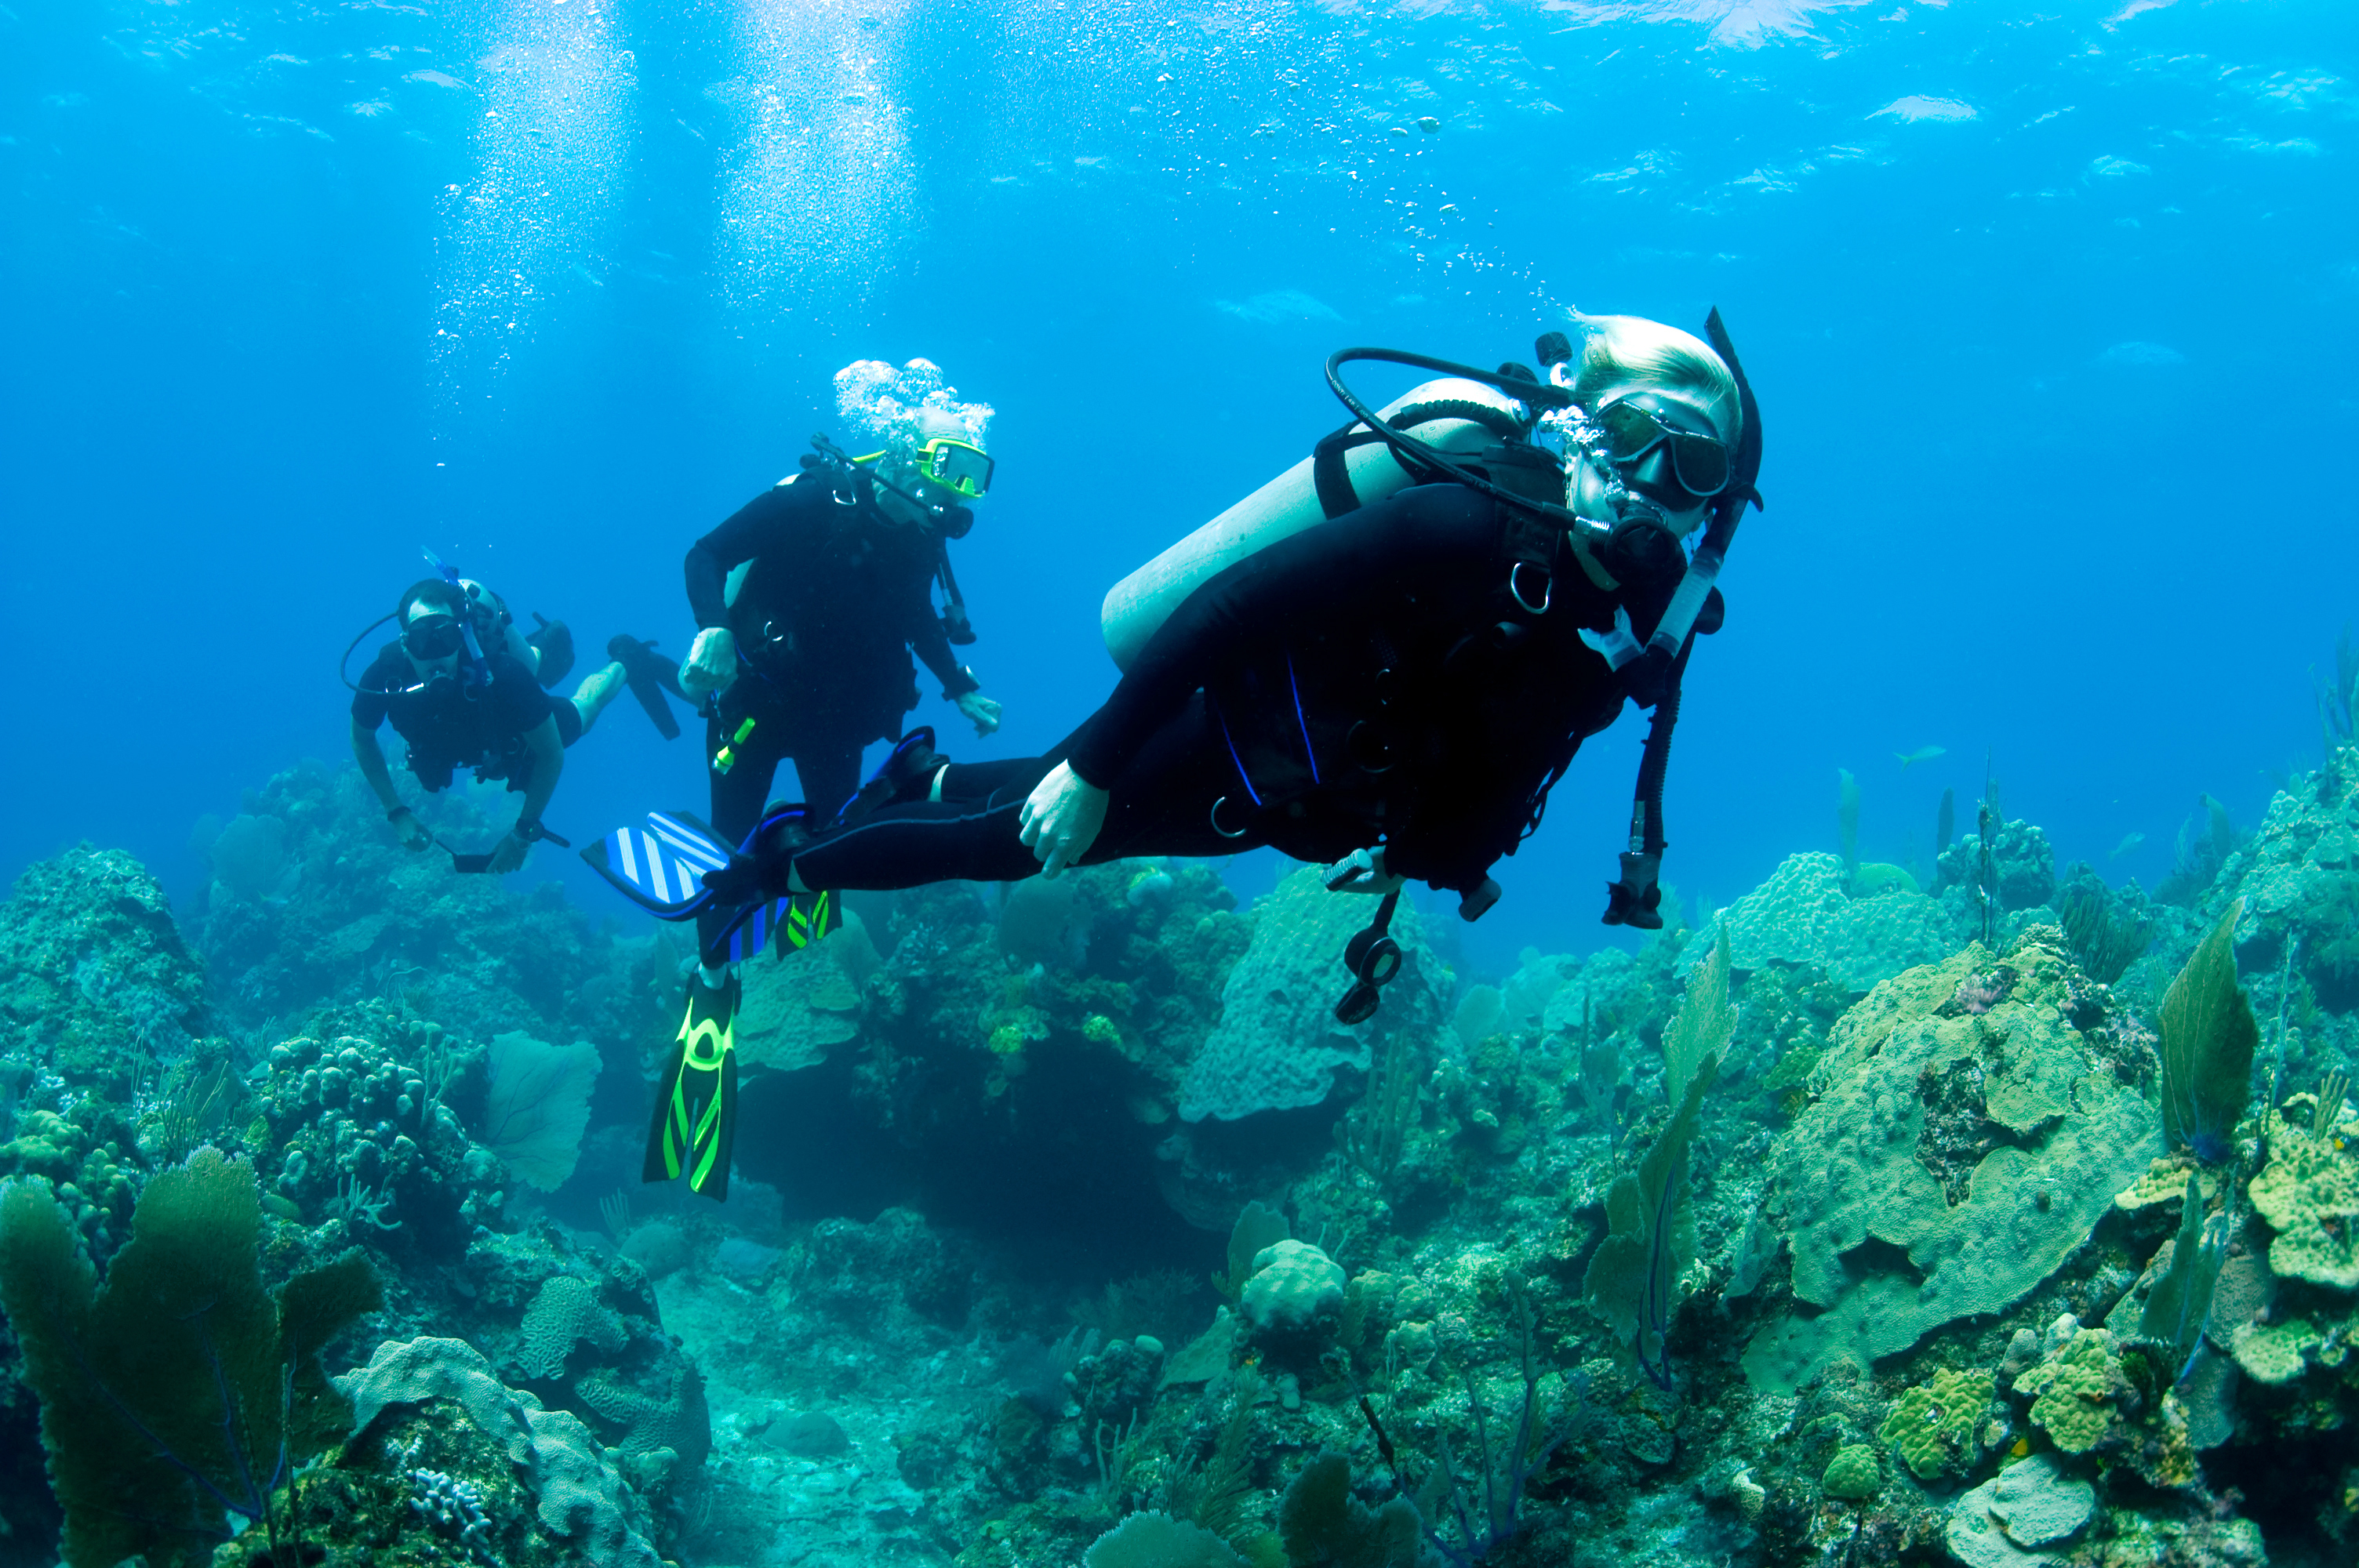 Divemaster as a diving guide